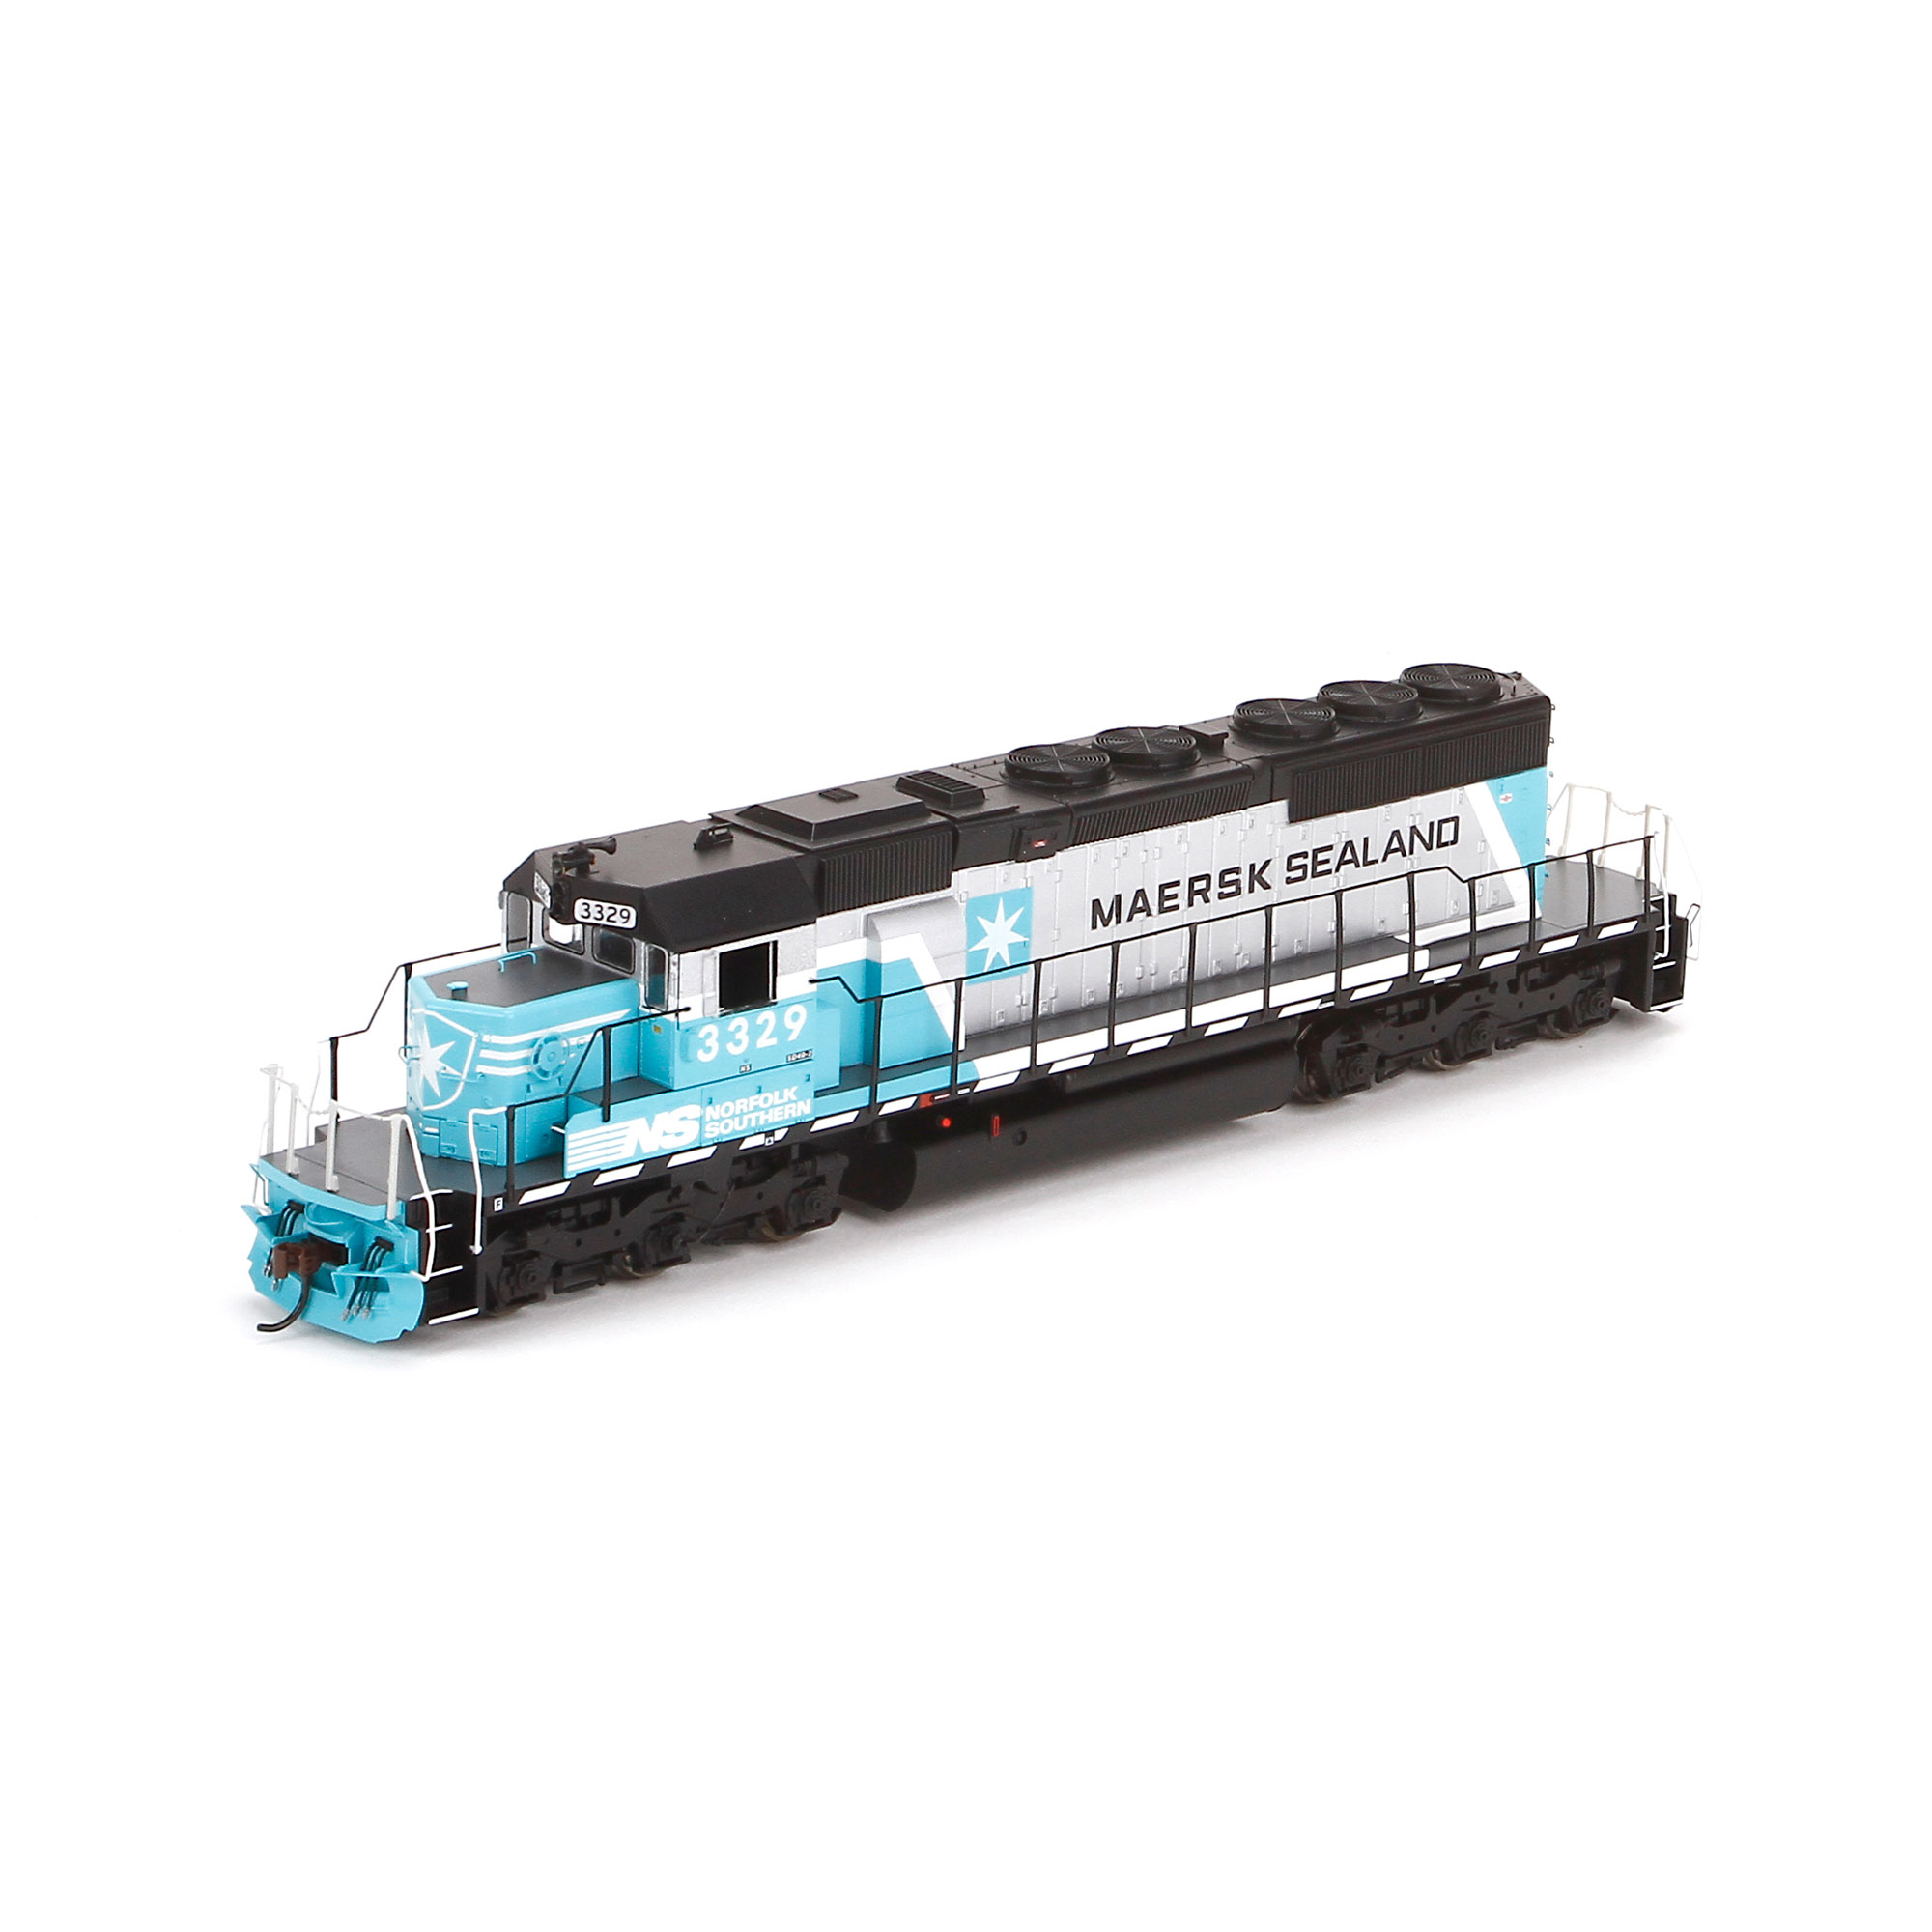 ho rtr sd40 maersk  3329  ath95266   athearn trains